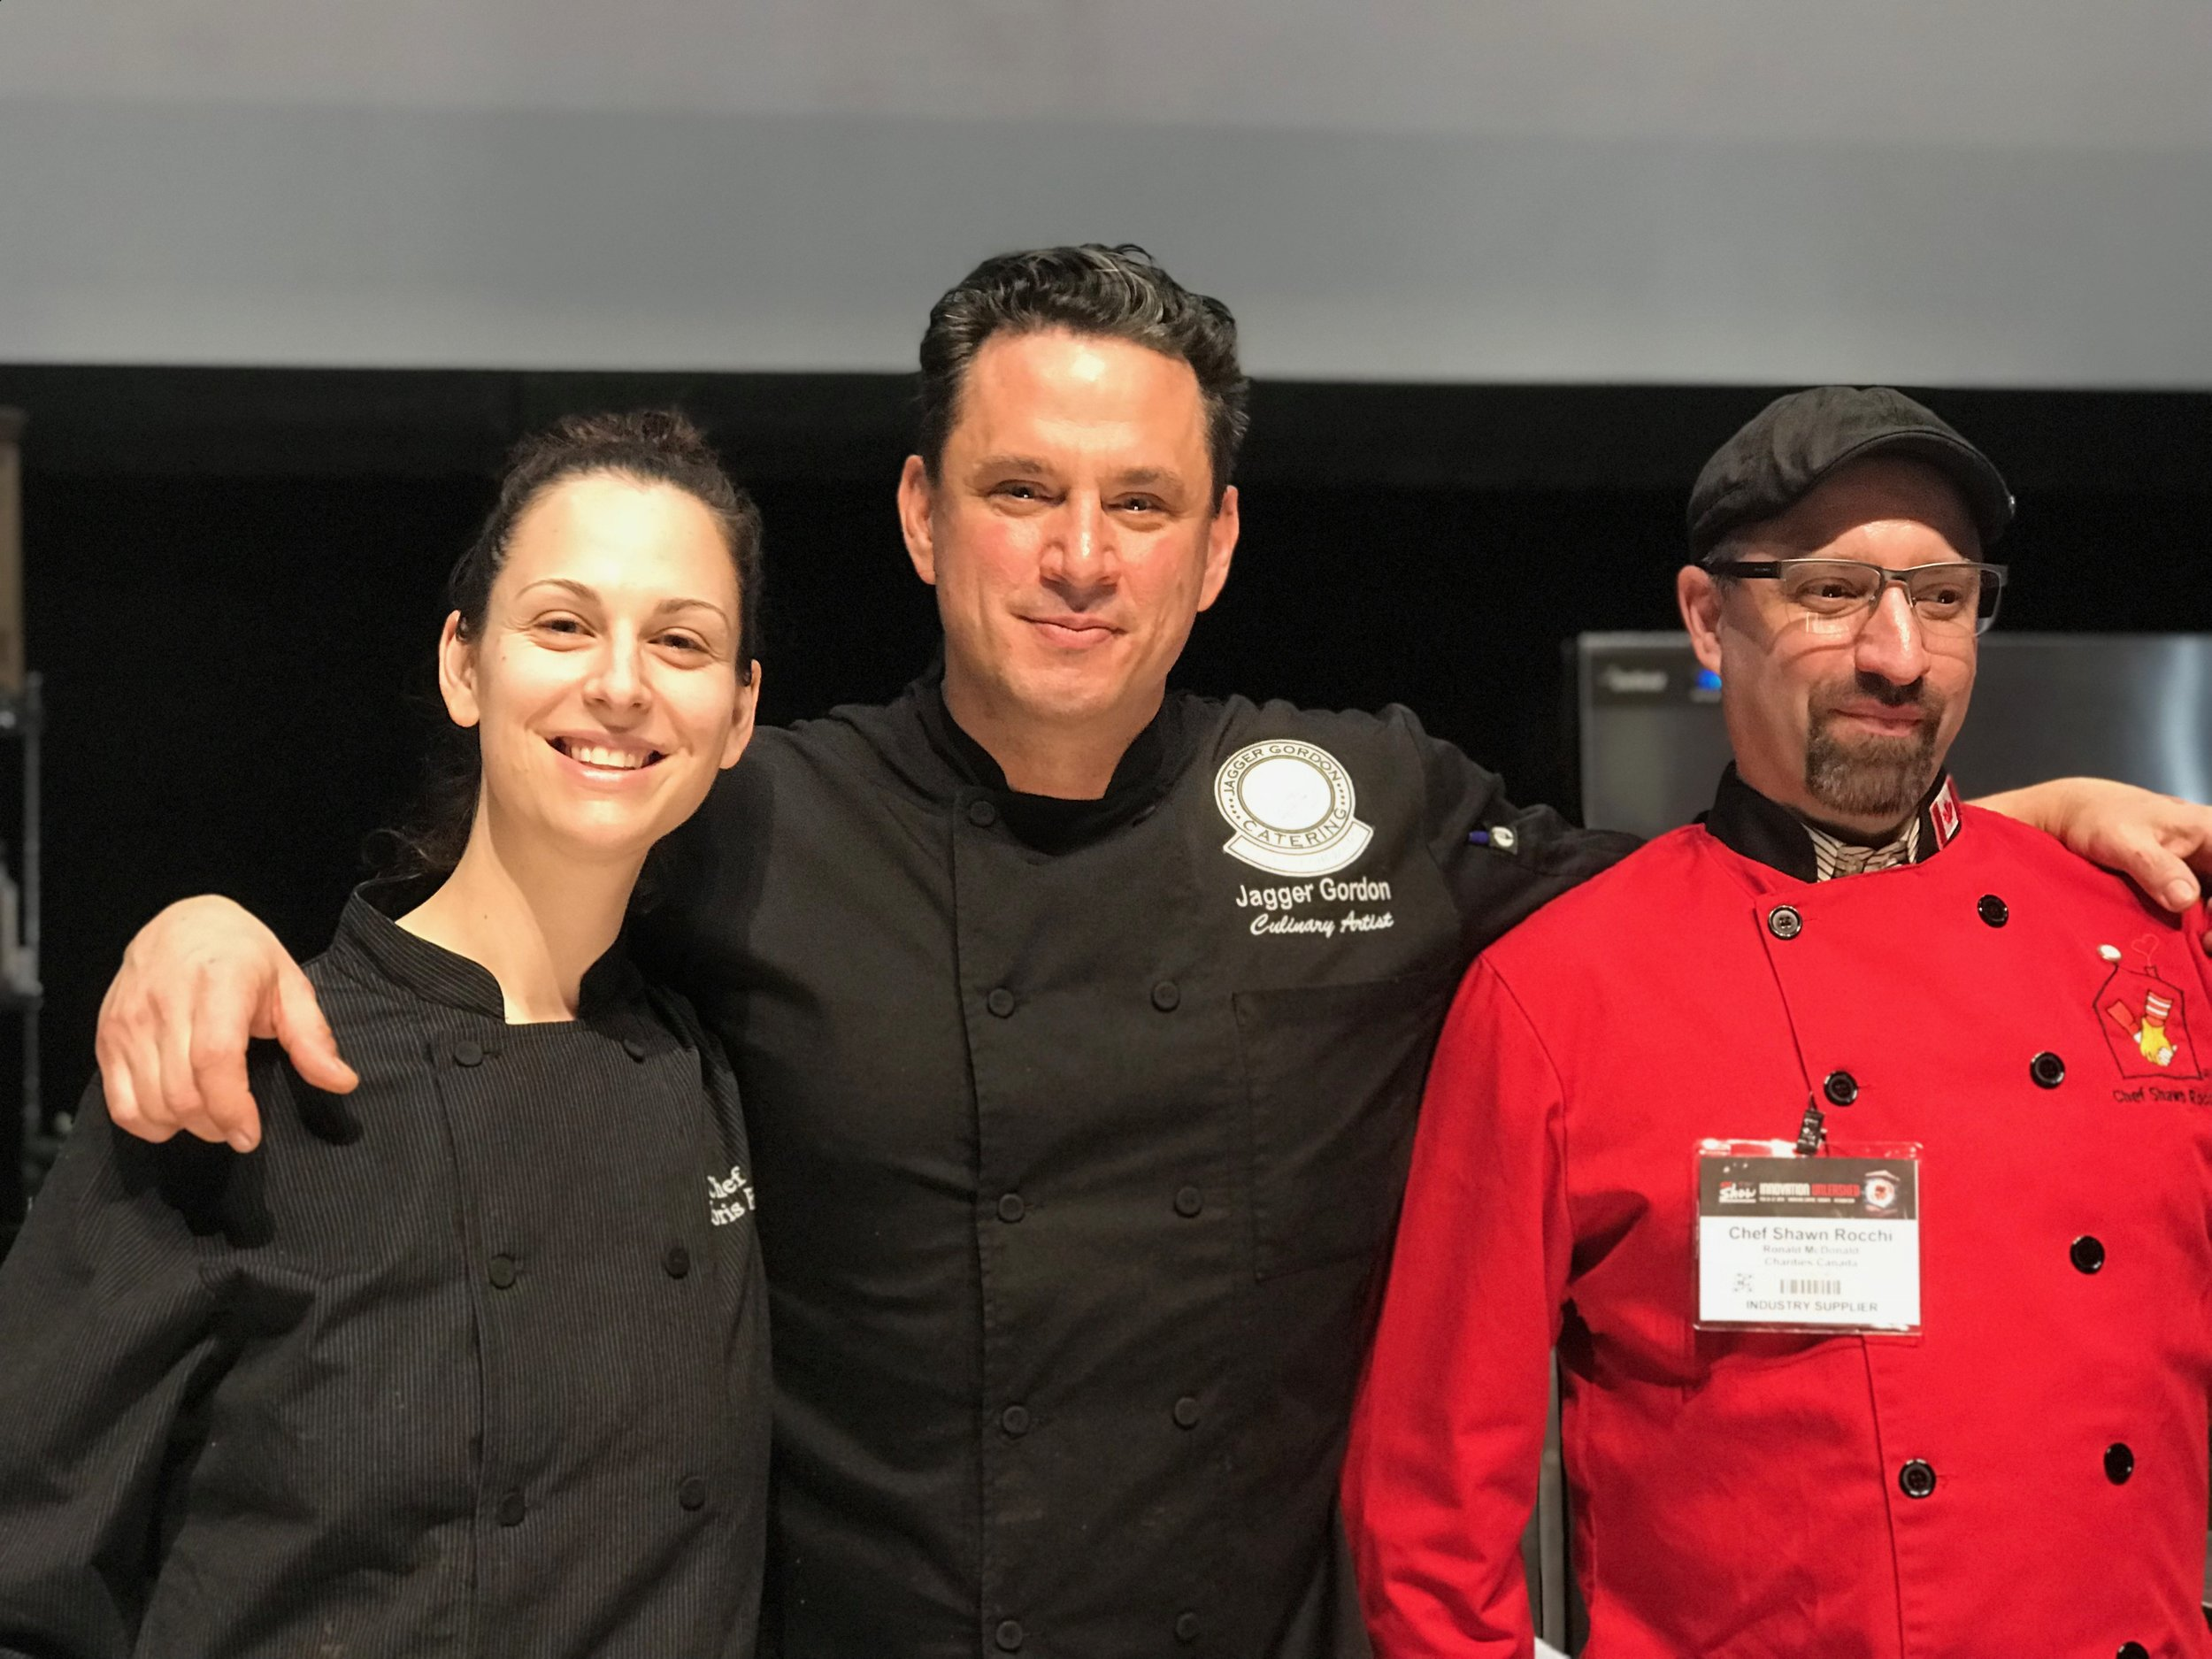 Chefs Jagger Gordon of Feed It Forward and Shawn Rocchi of Chef Alot Catering (Toronto, Canada)